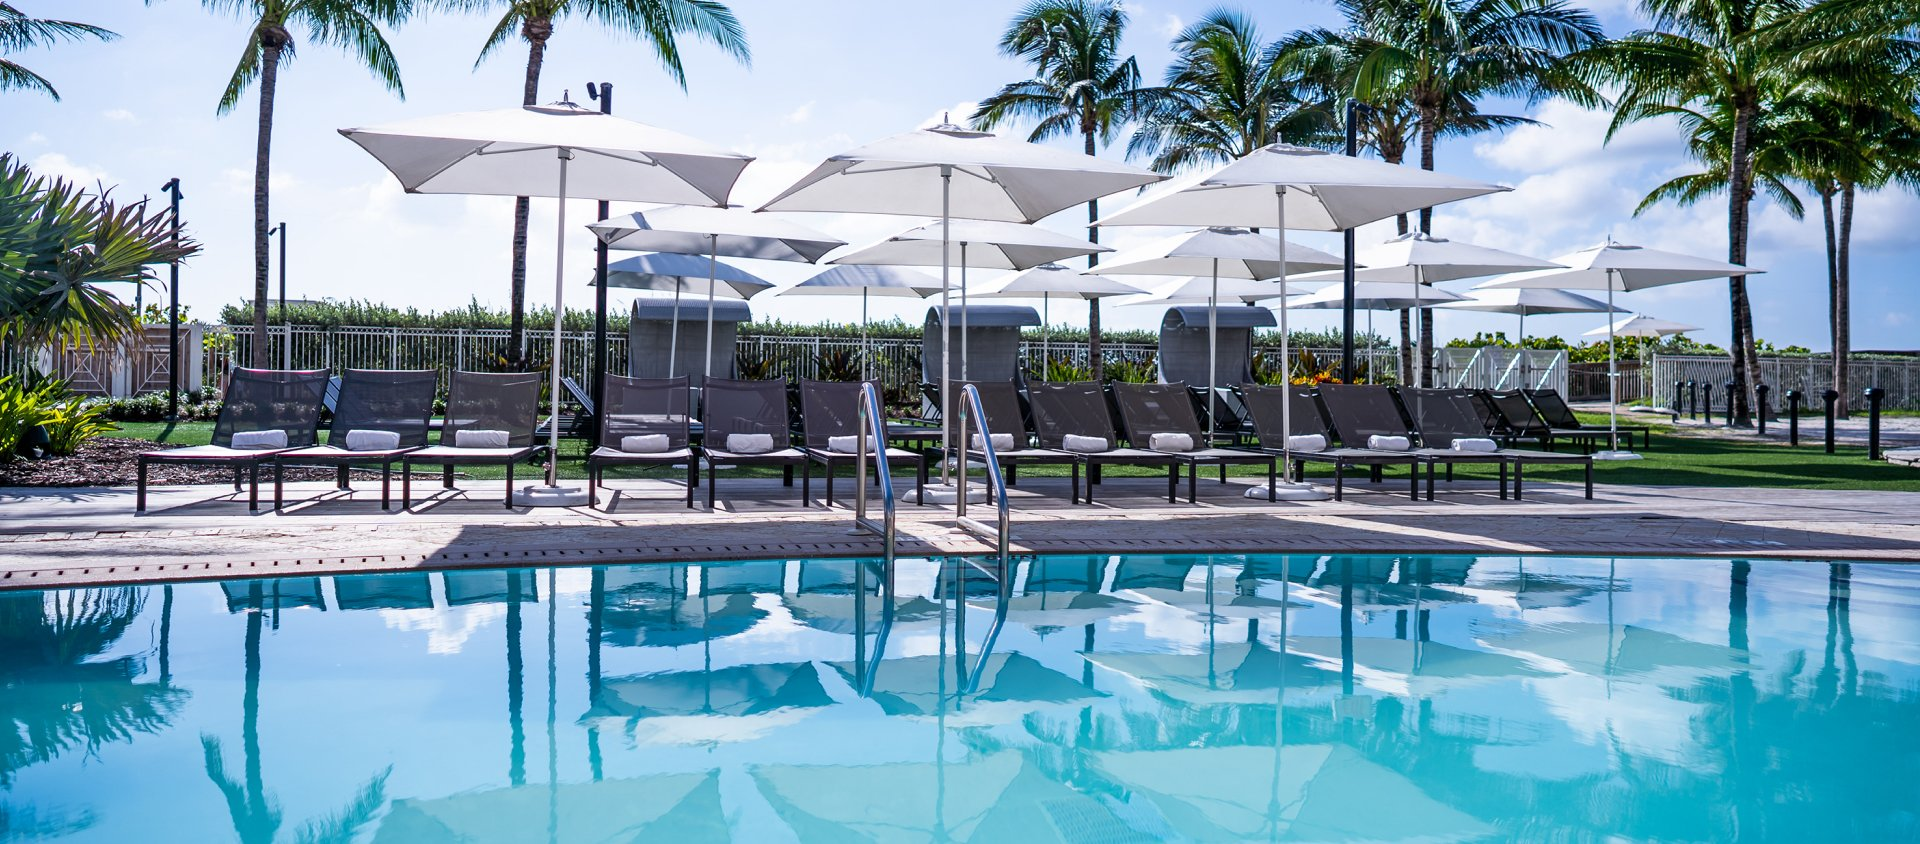 Pool and loungers at Eden Roc